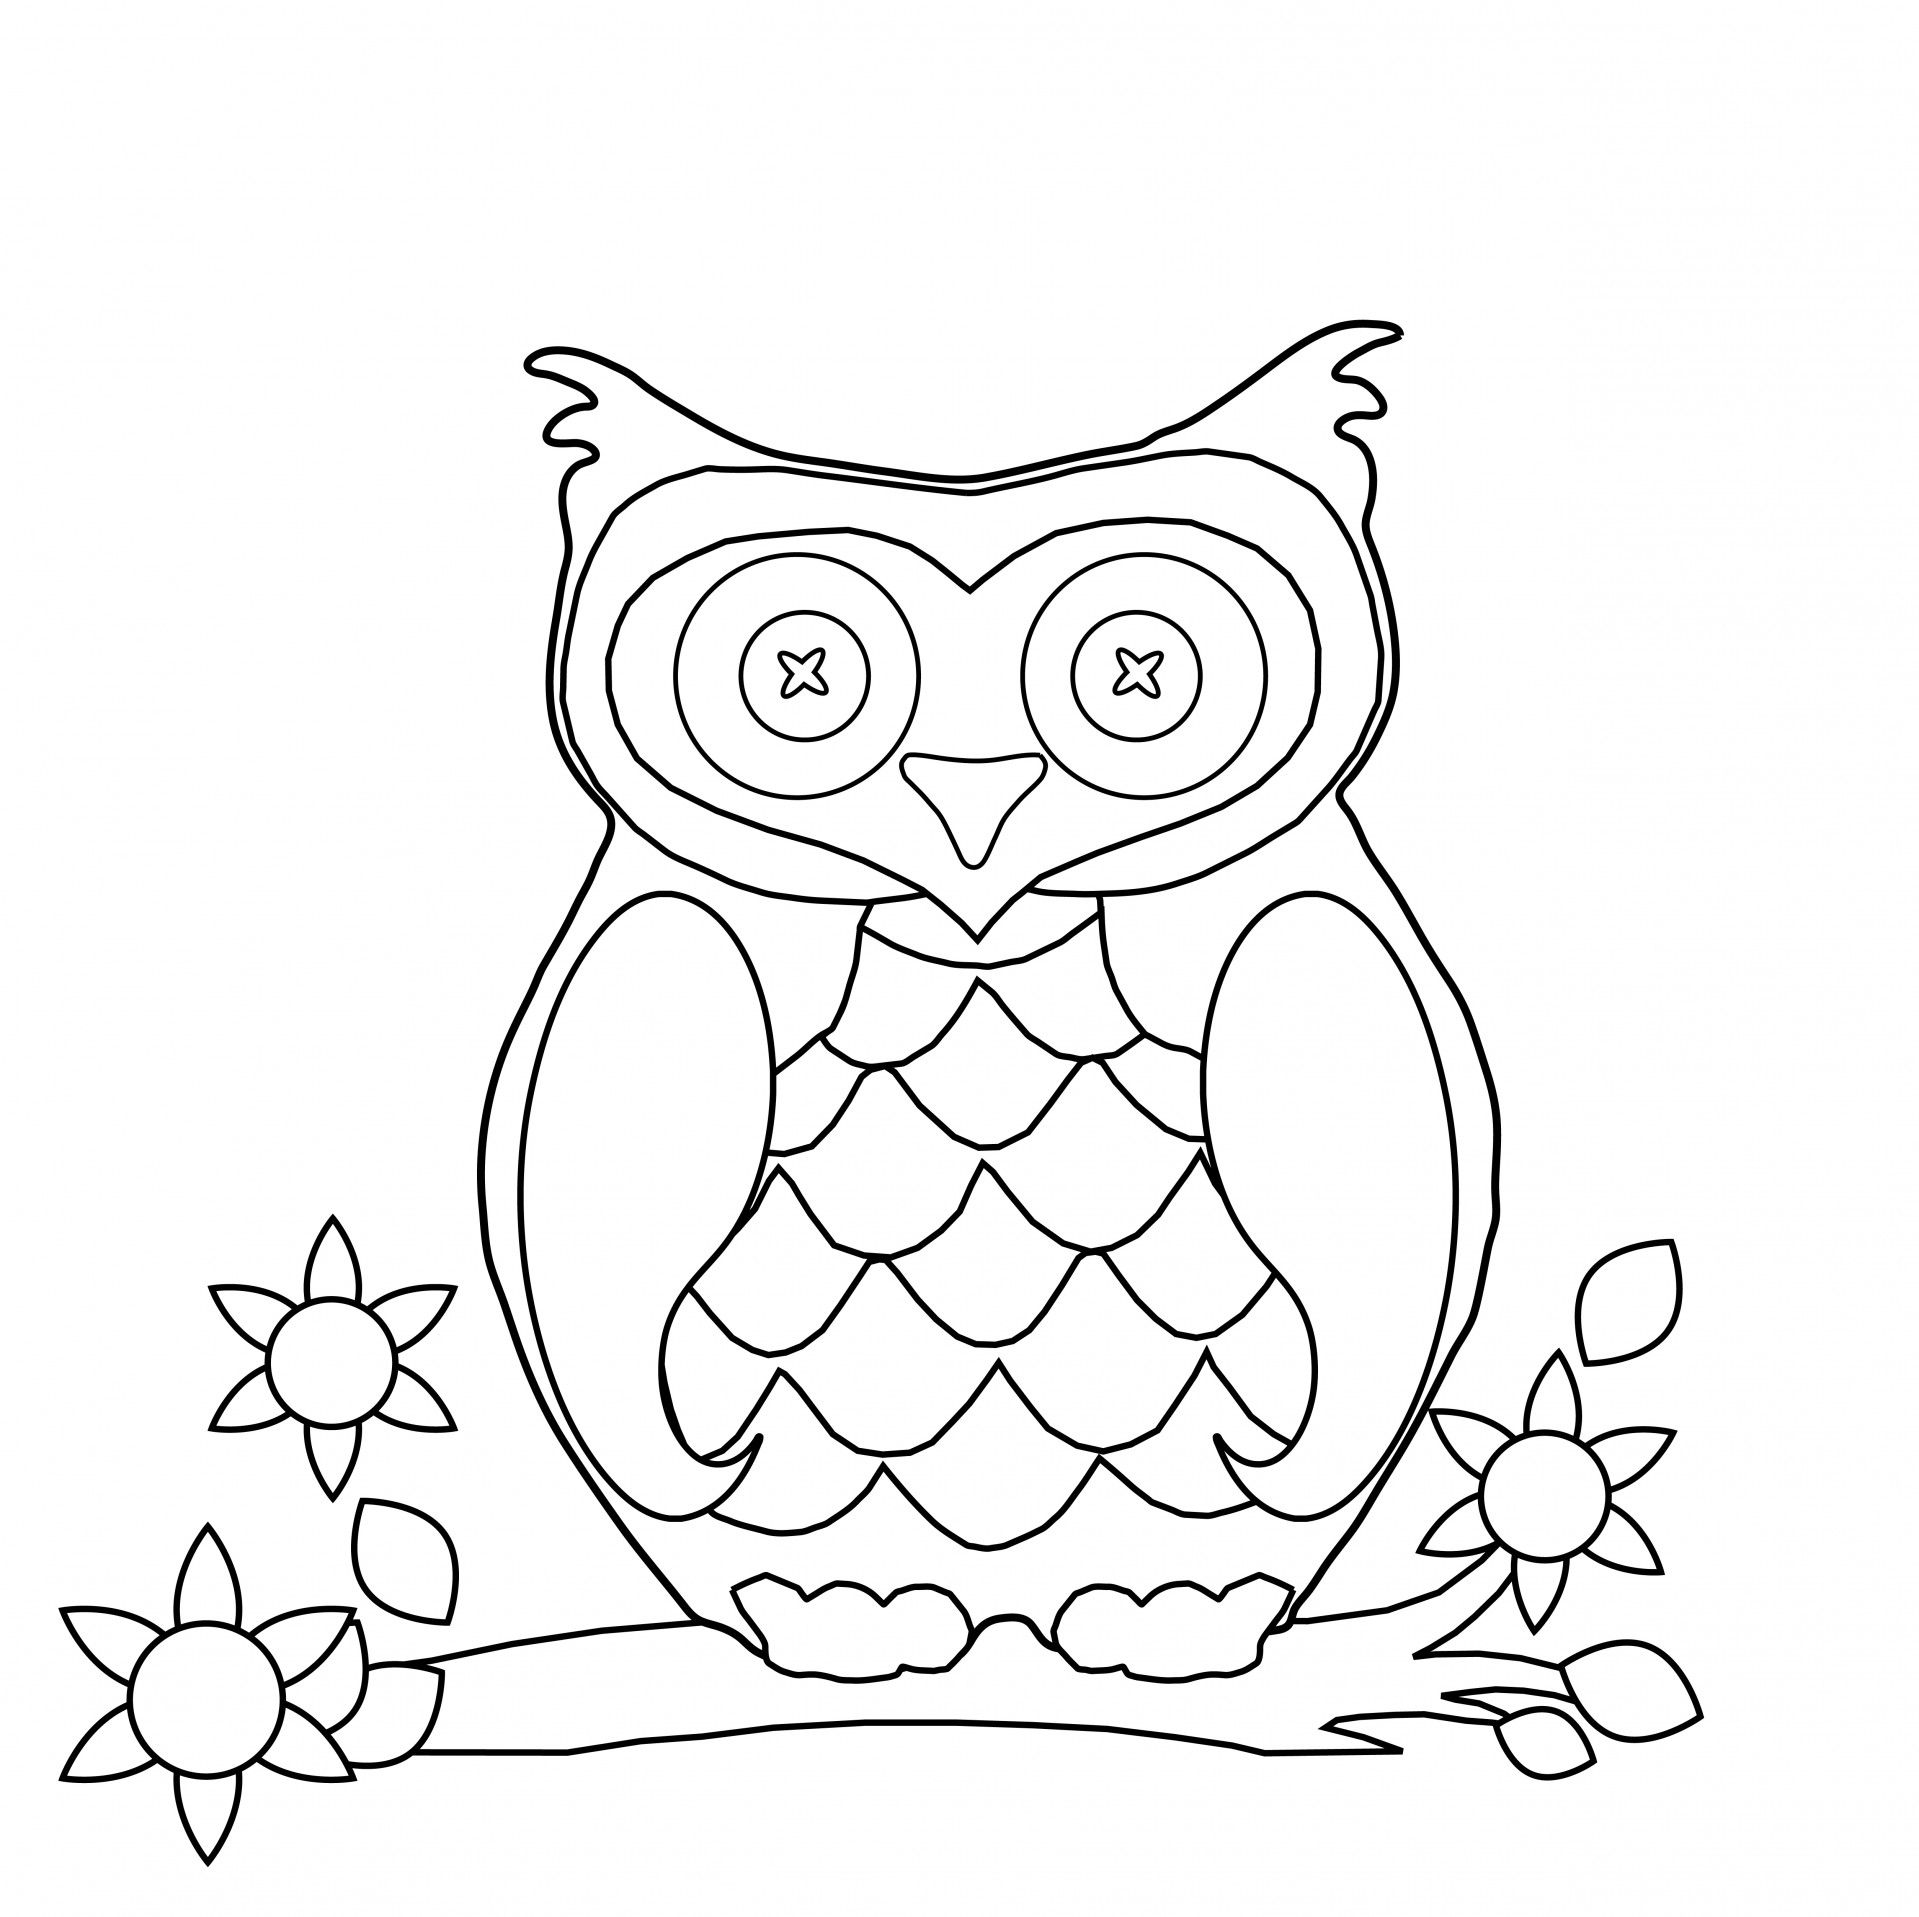 free coloring pages for adults printable serendipity adult coloring pages printable coloring for adults printable pages free